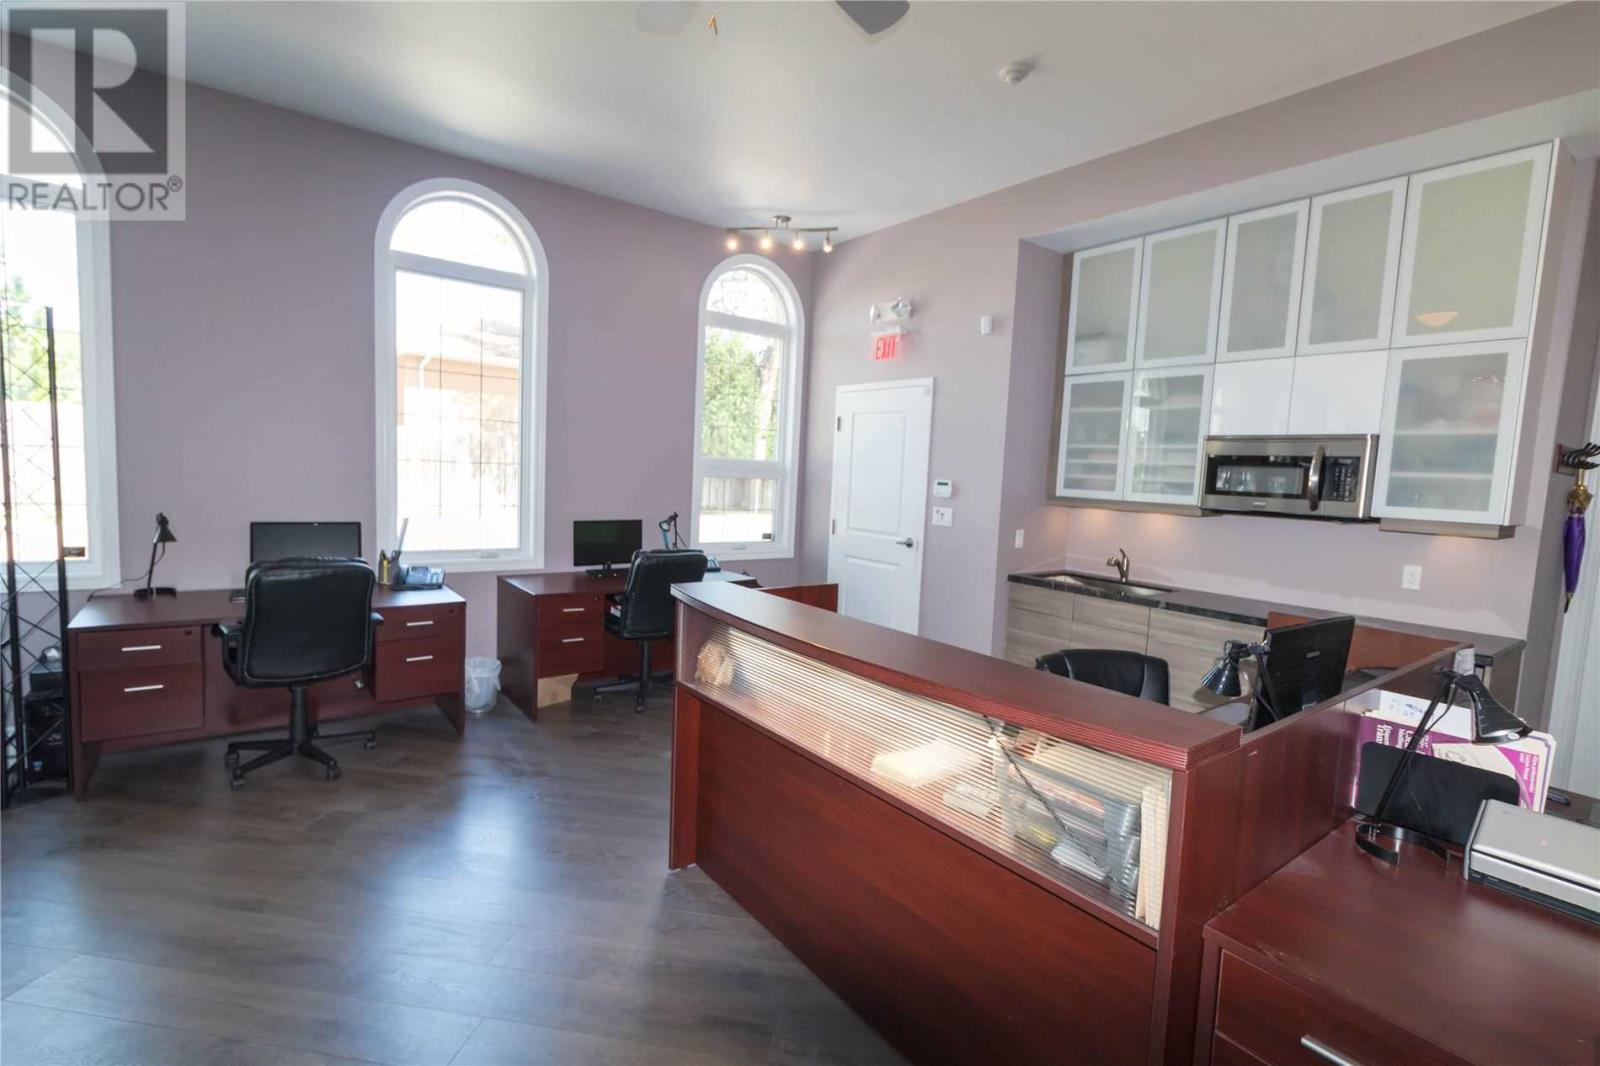 3447 Cawthra Rd, Mississauga, Ontario  L5A 2X9 - Photo 4 - W4679011